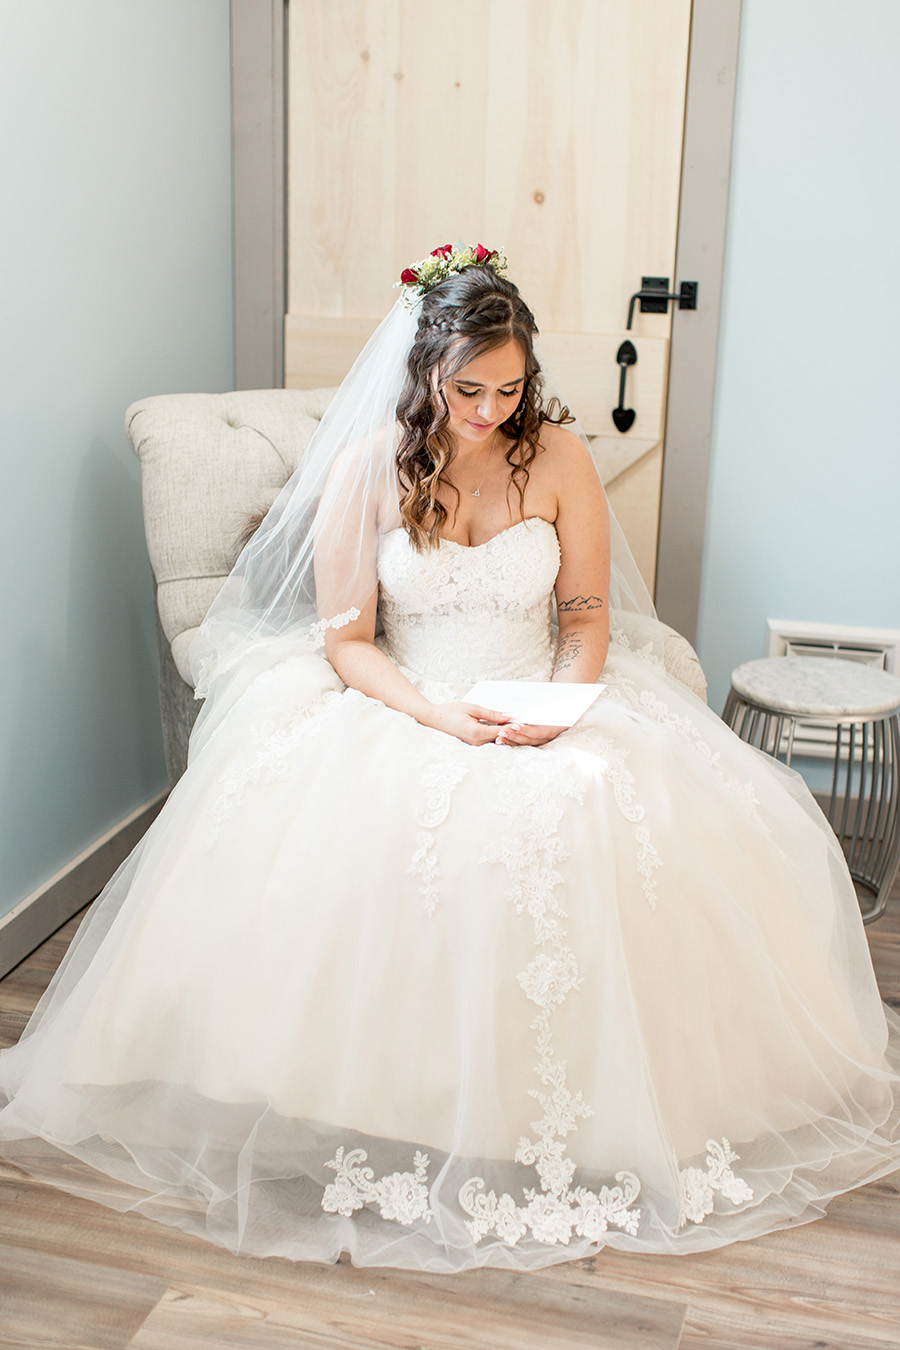 bride reading a letter to her groom on her wedding day